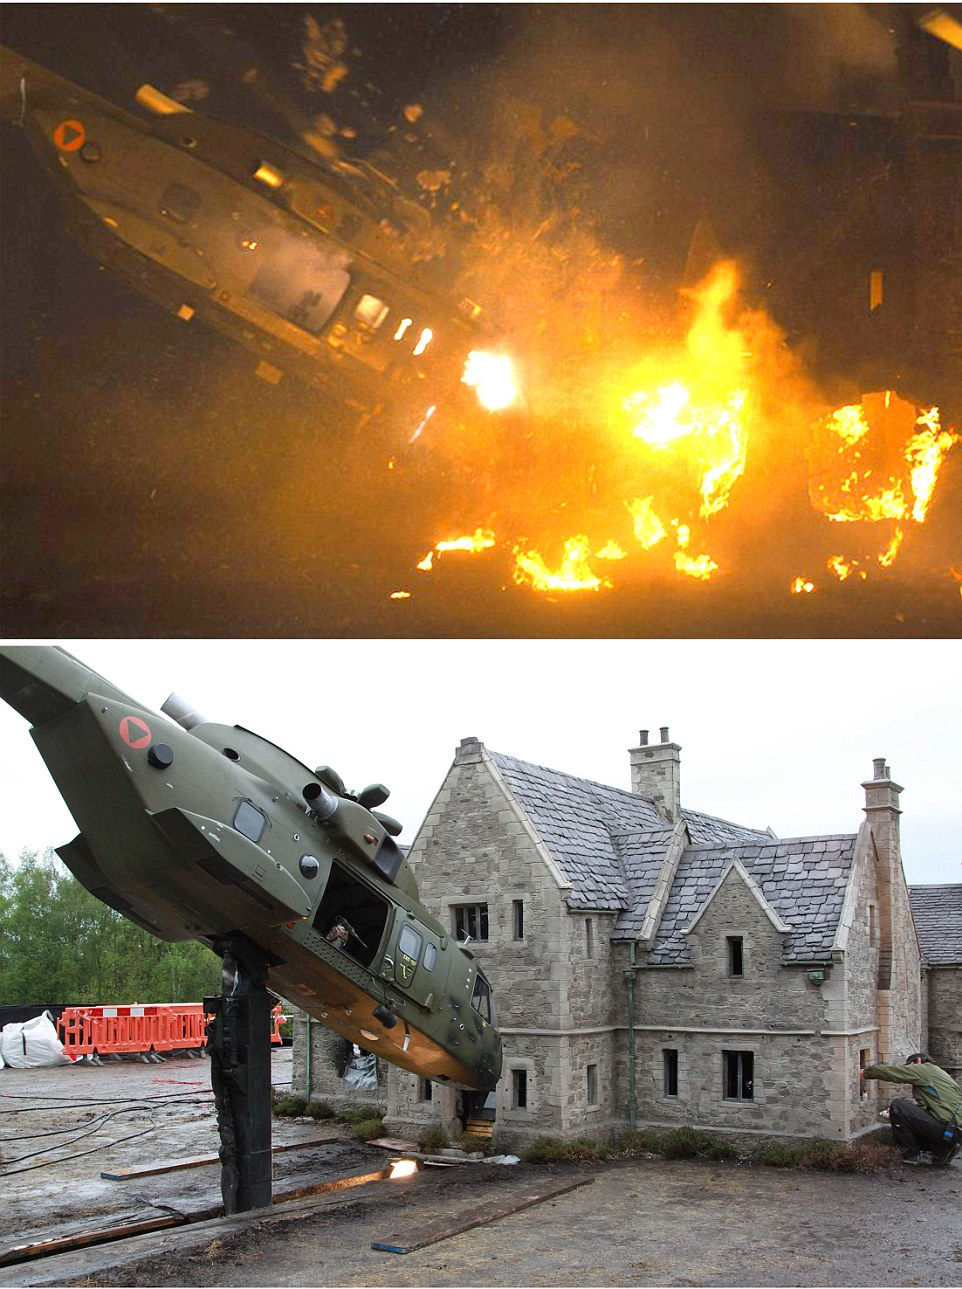 Skyfall (2012) - Skyfall Lodge - the childhood home of James Bond is seen in model form (see man on right for scale during filming) before explosively attacked by enemy helicopter.